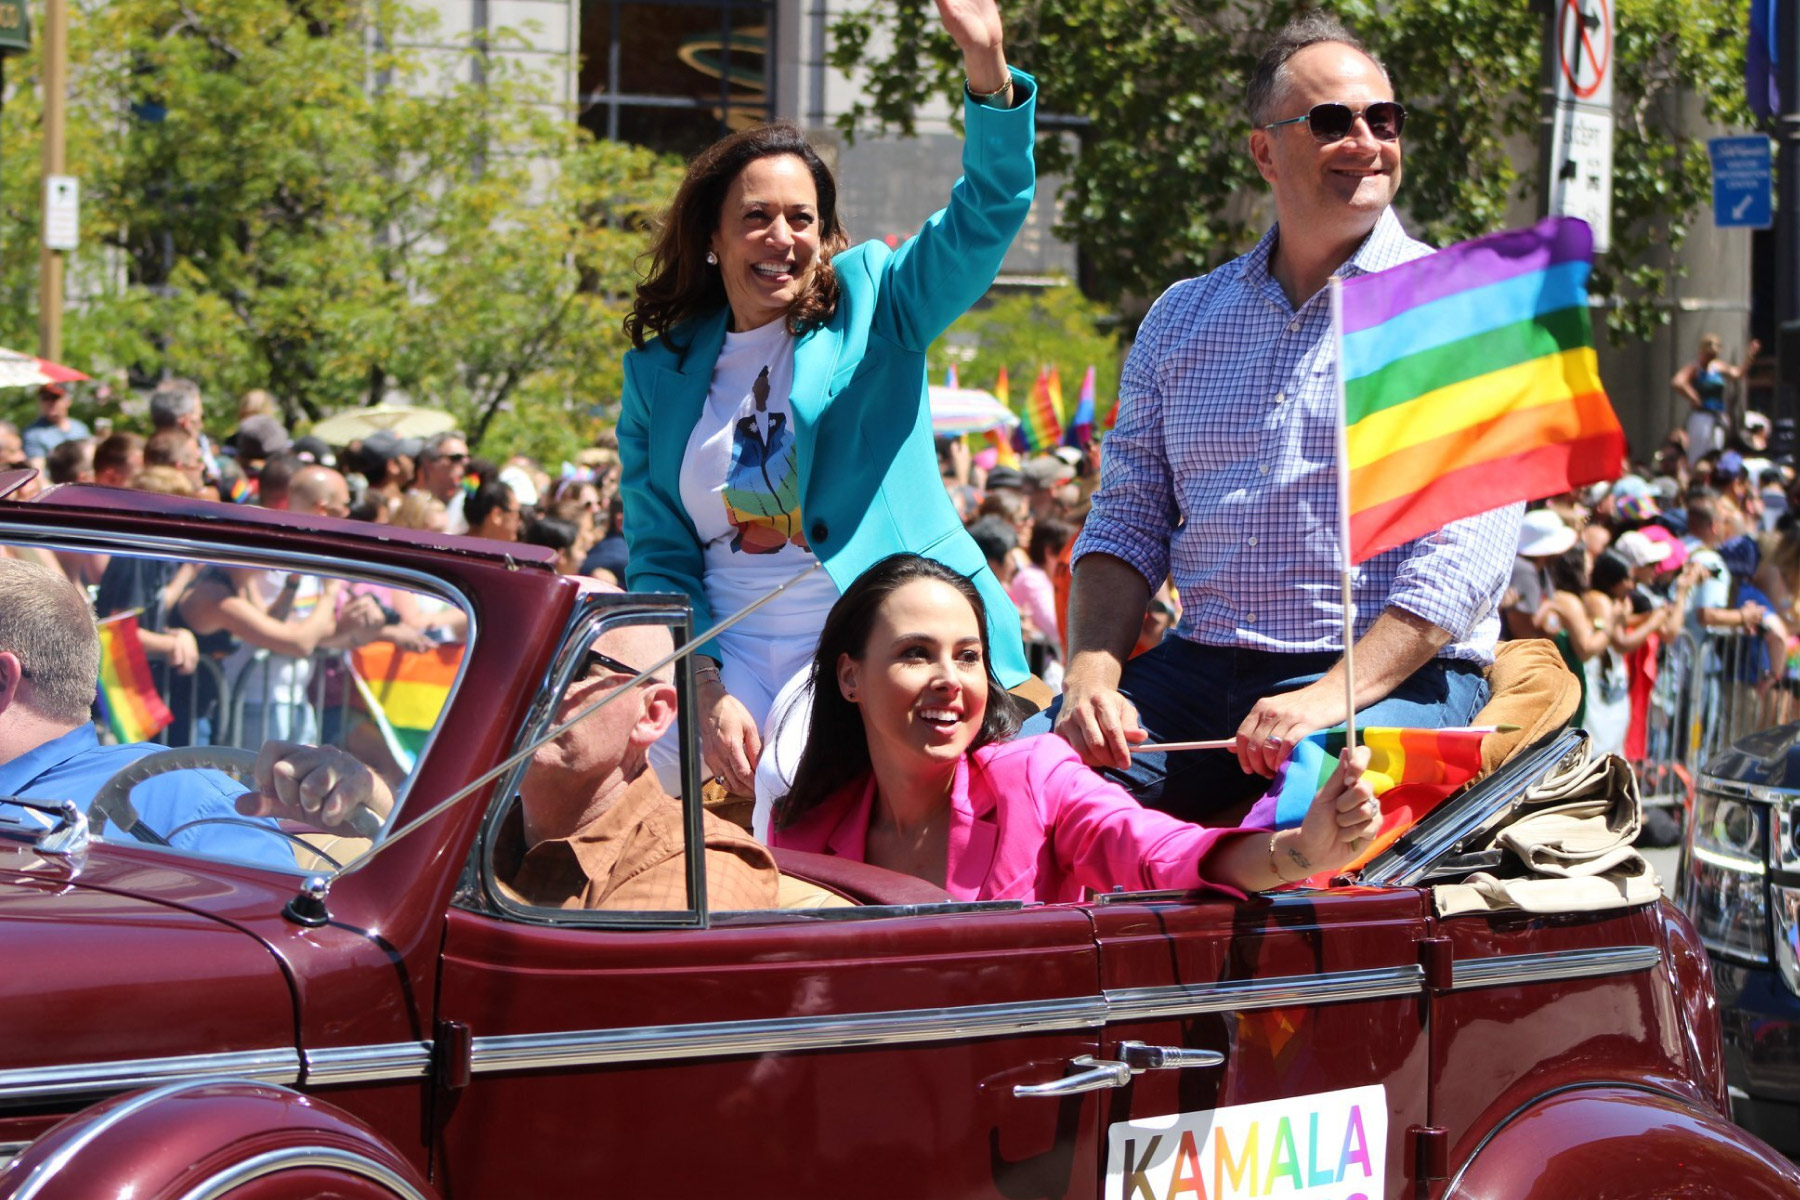 Vice President Harris smiles at a crowd at the Pride Parade in San Francisco, CA, accompanied with her husband, Doug, and her niece, Meena